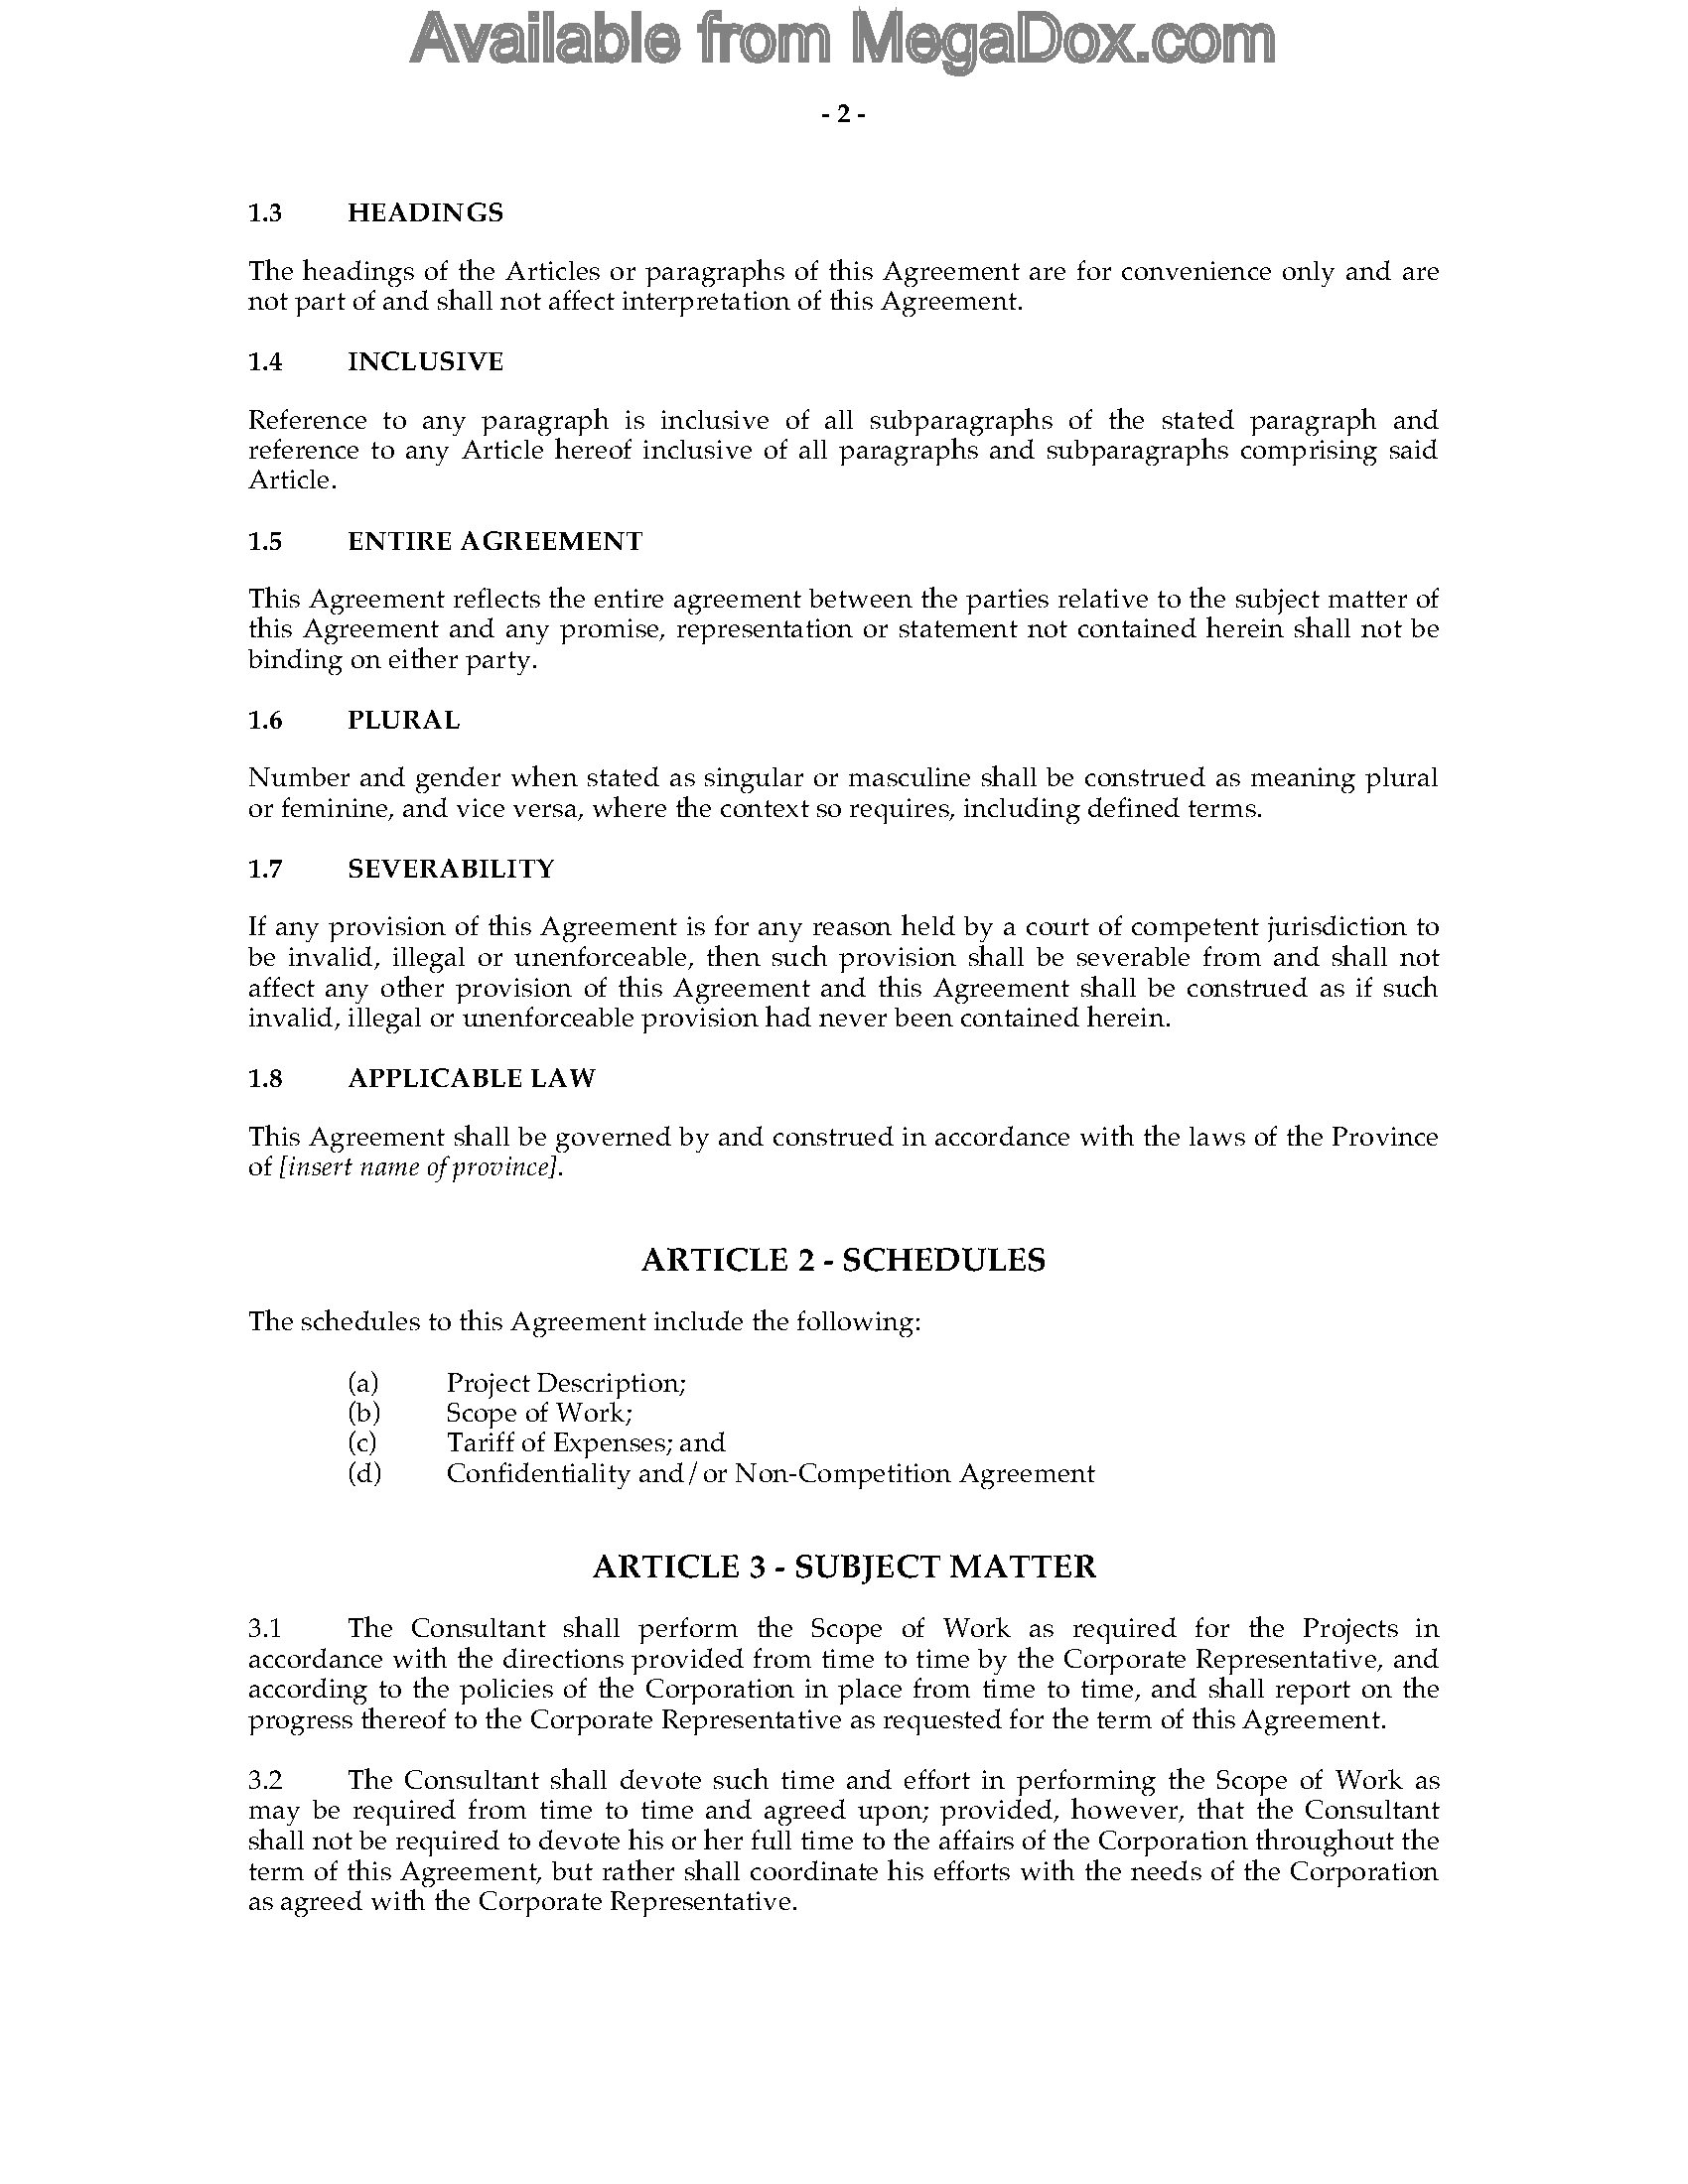 canada consulting contract and confidentiality agreement